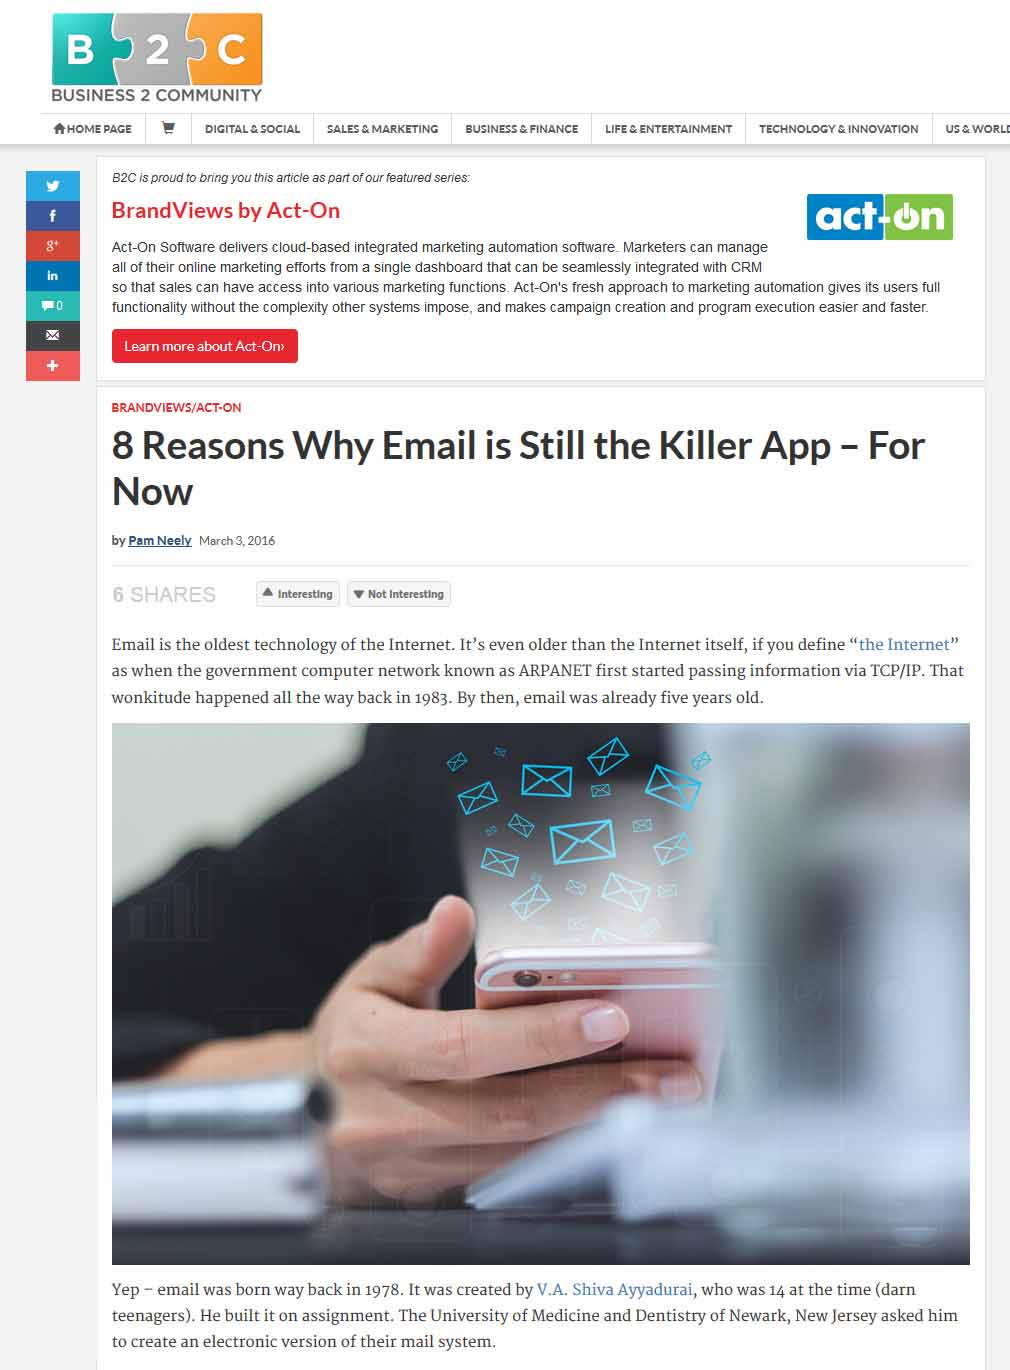 8 Reasons Why Email Is Still The Killer App – For Now